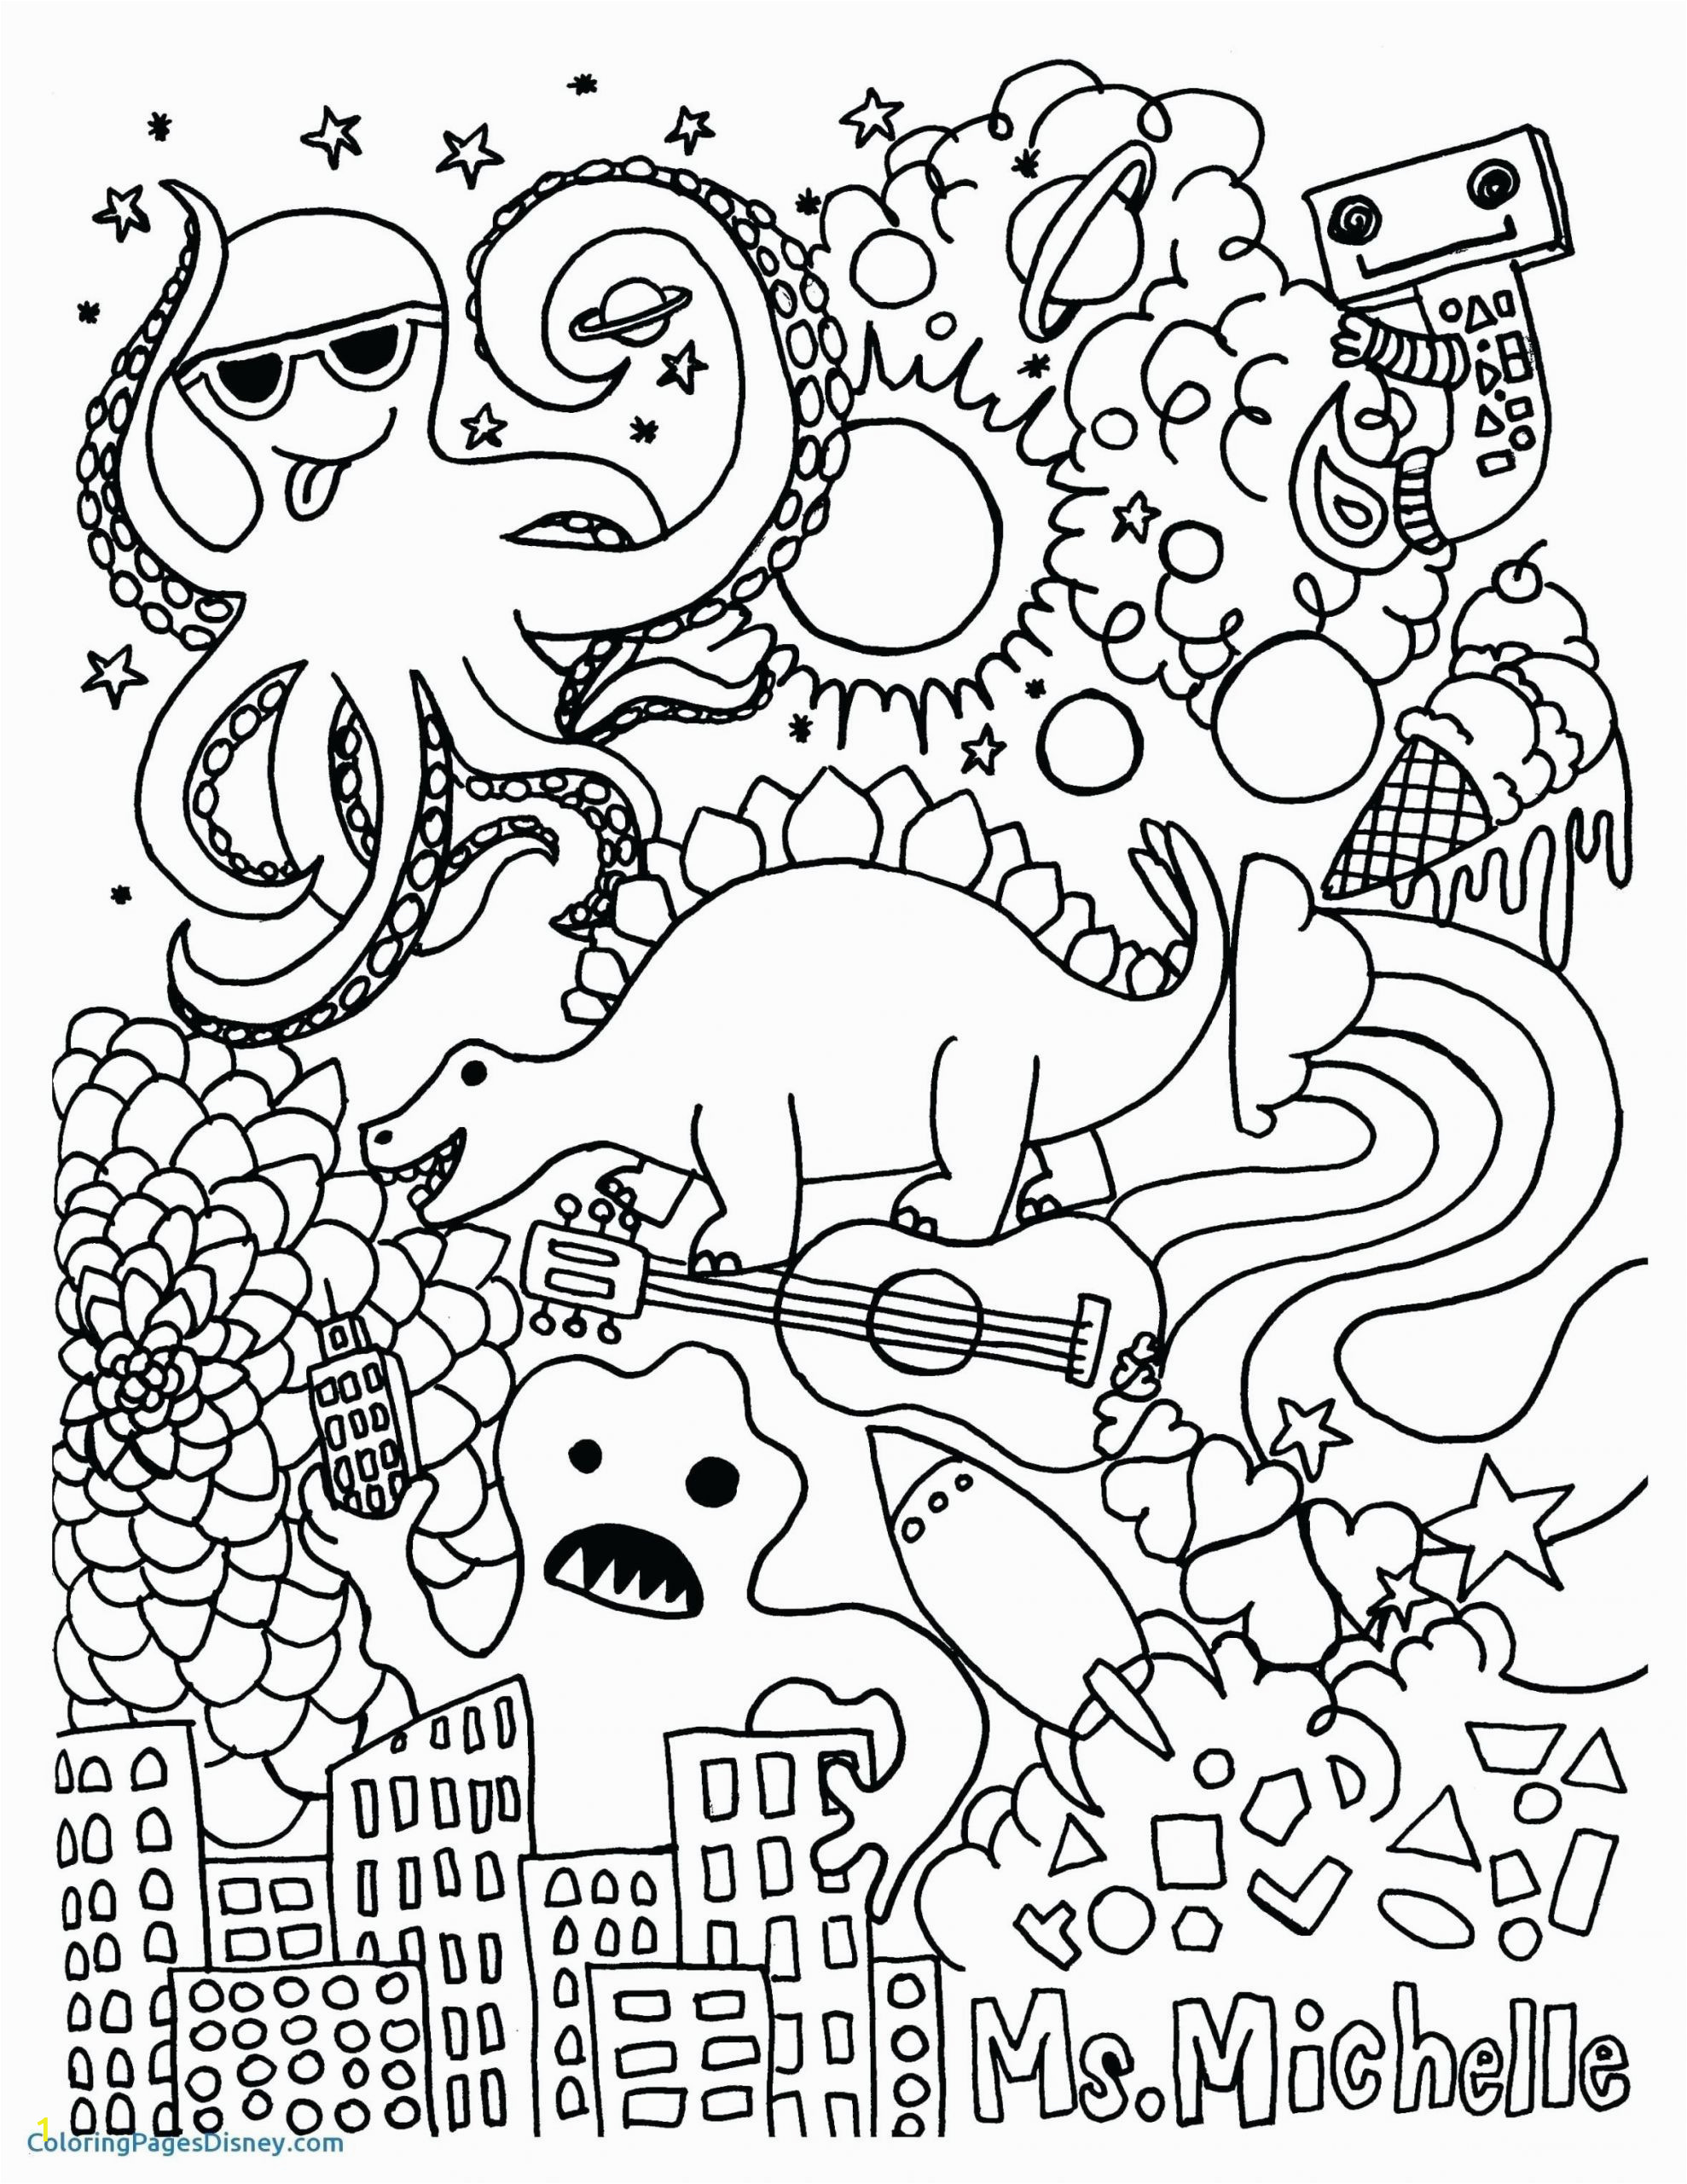 toy story coloring pages free to print beautiful coloring pages fabulous spaceship coloring page pages free of toy story coloring pages free to print scaled